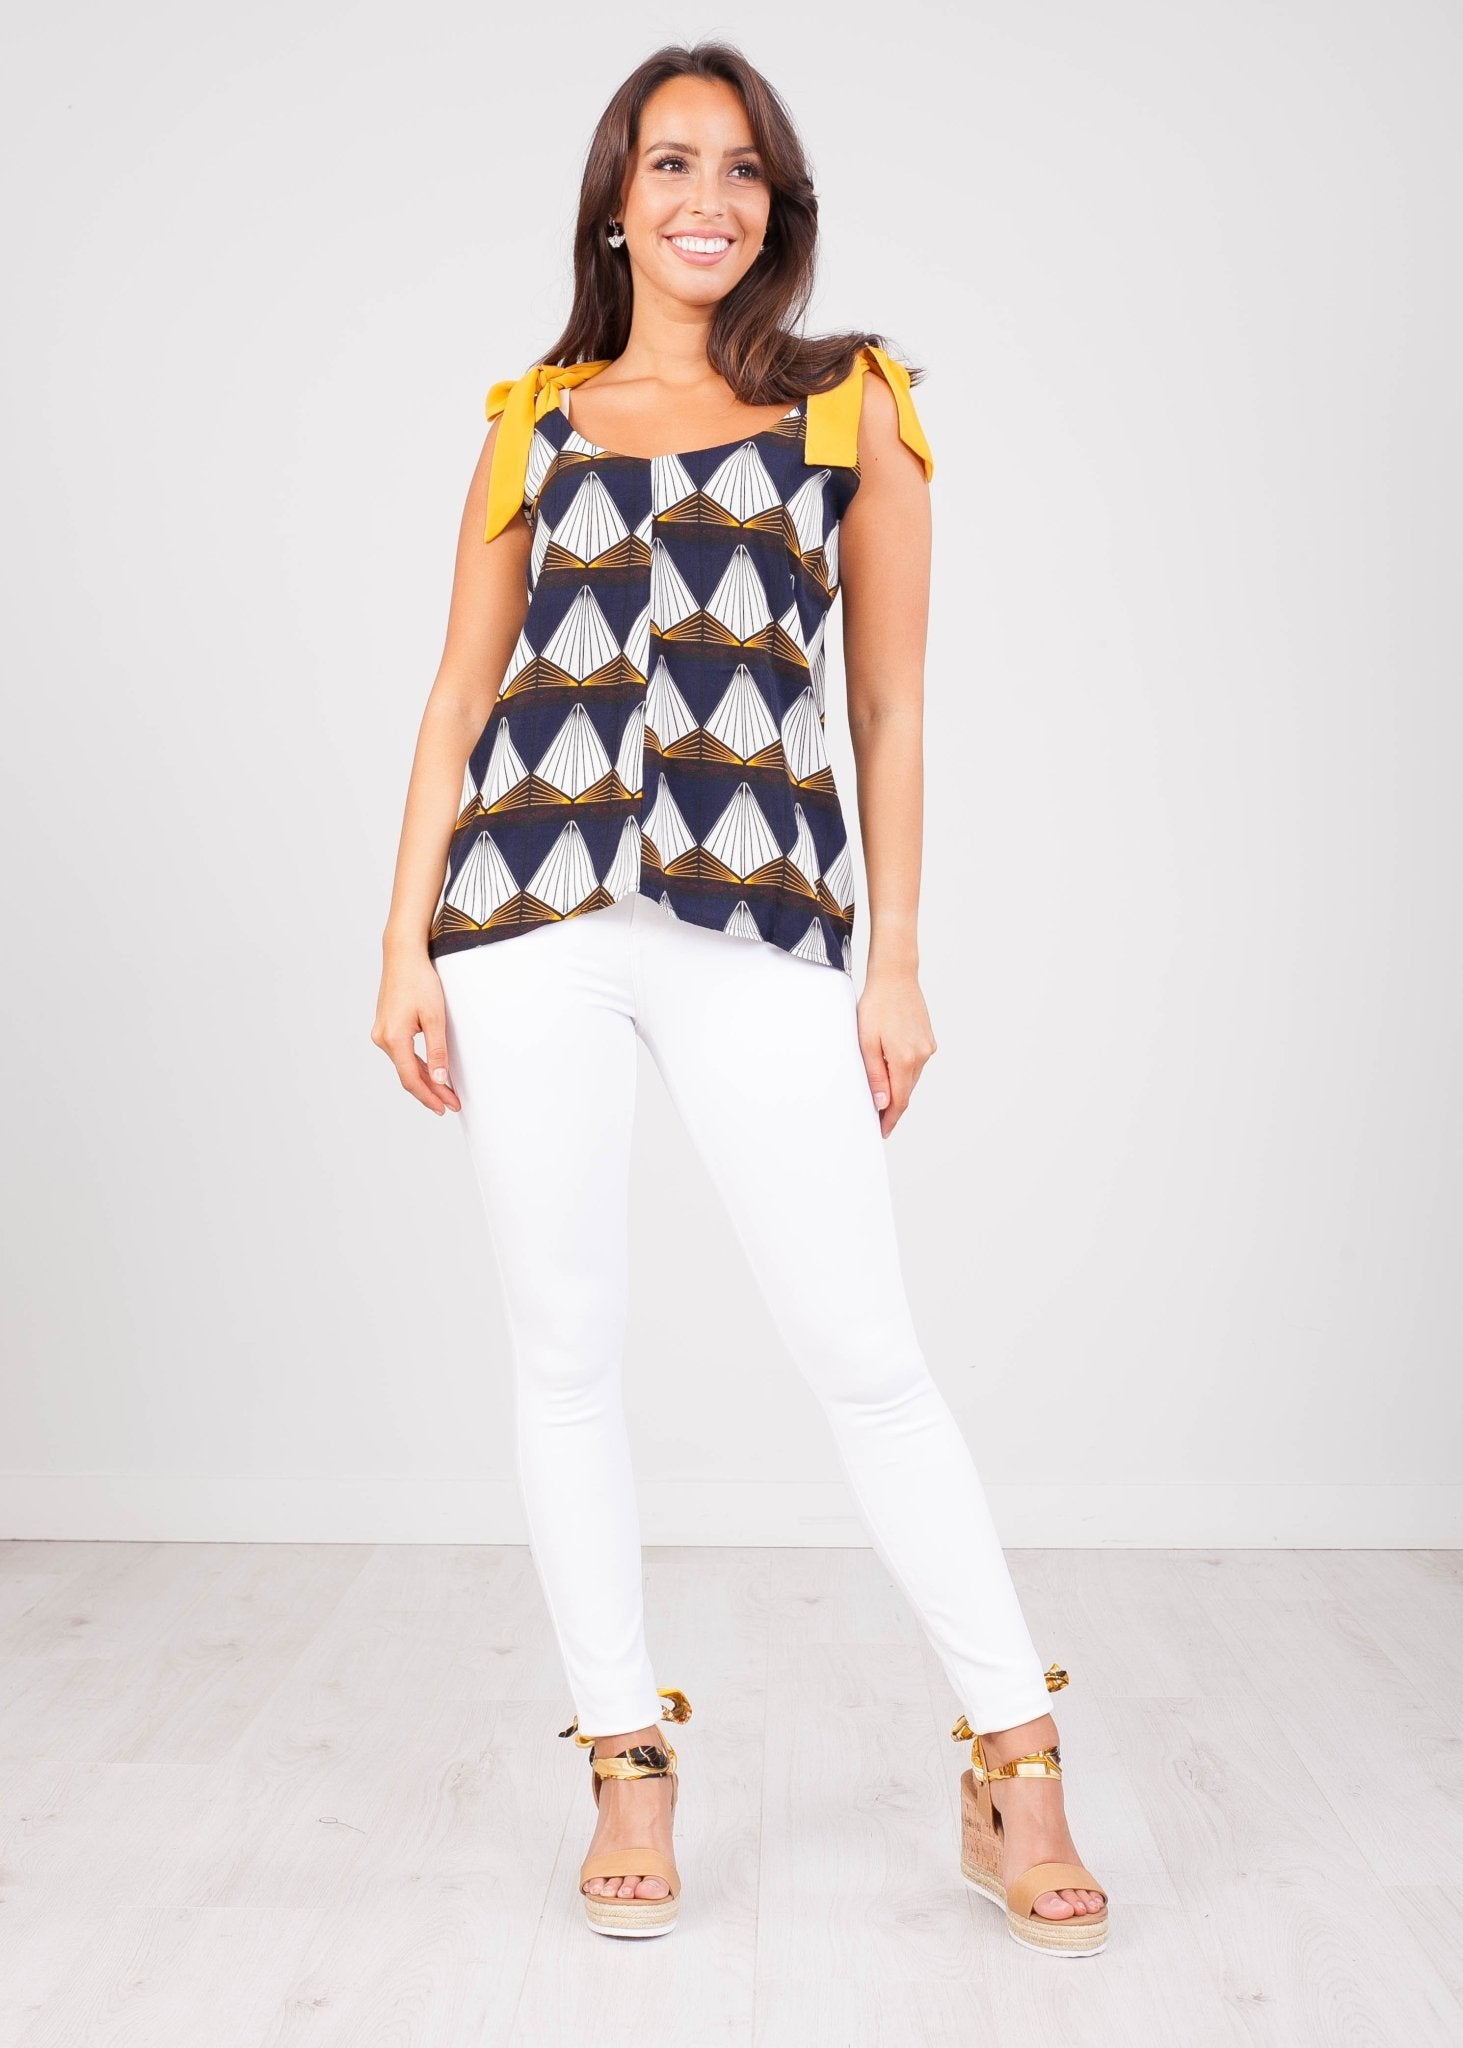 FiFi Navy & Mustard Top - The Walk in Wardrobe